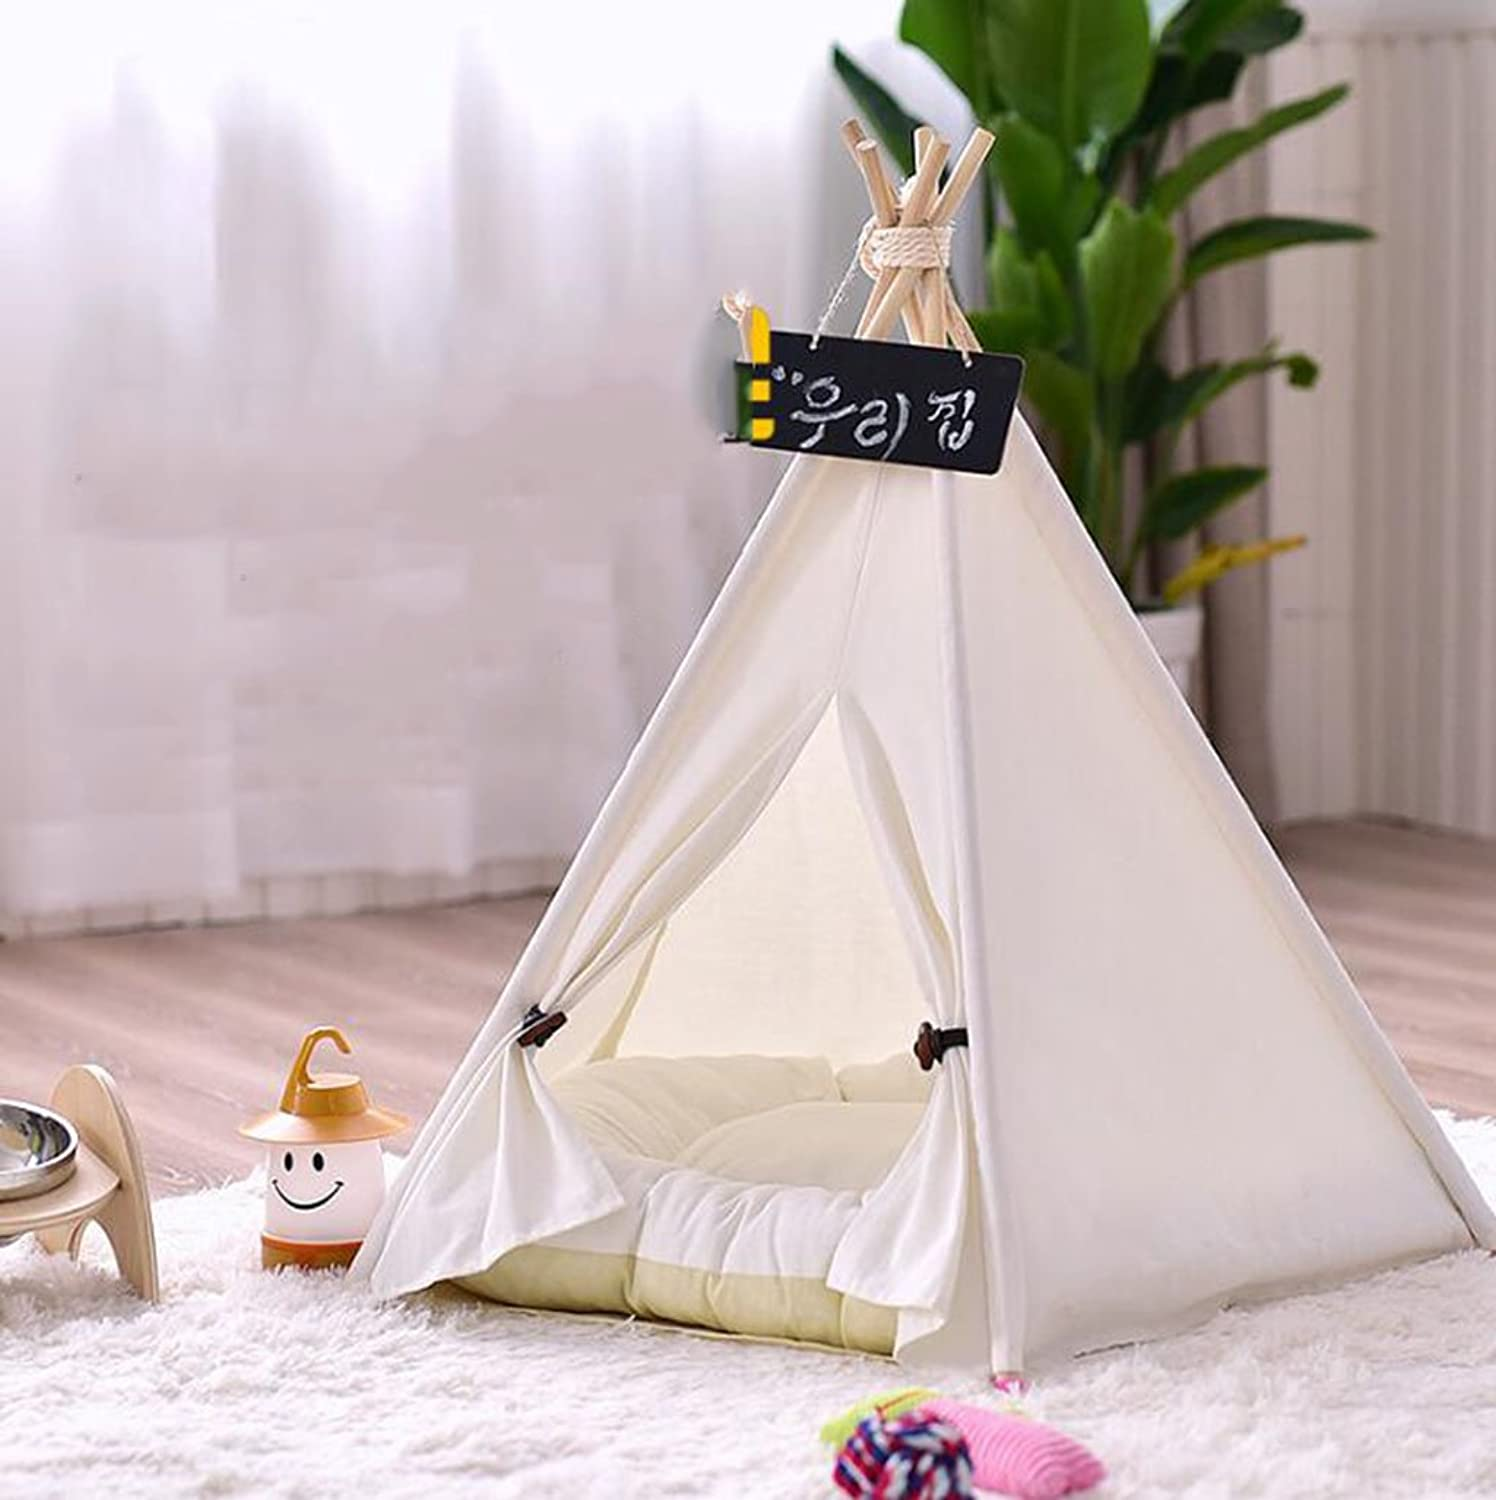 RUIRUI ZHAO Four Seasons Universal Cat And Dog Kennel Removable Tent Pet Kennel Teddy Small And Medium Dog Kennel Cat Kennel White Tent Pet Kennel,Medium